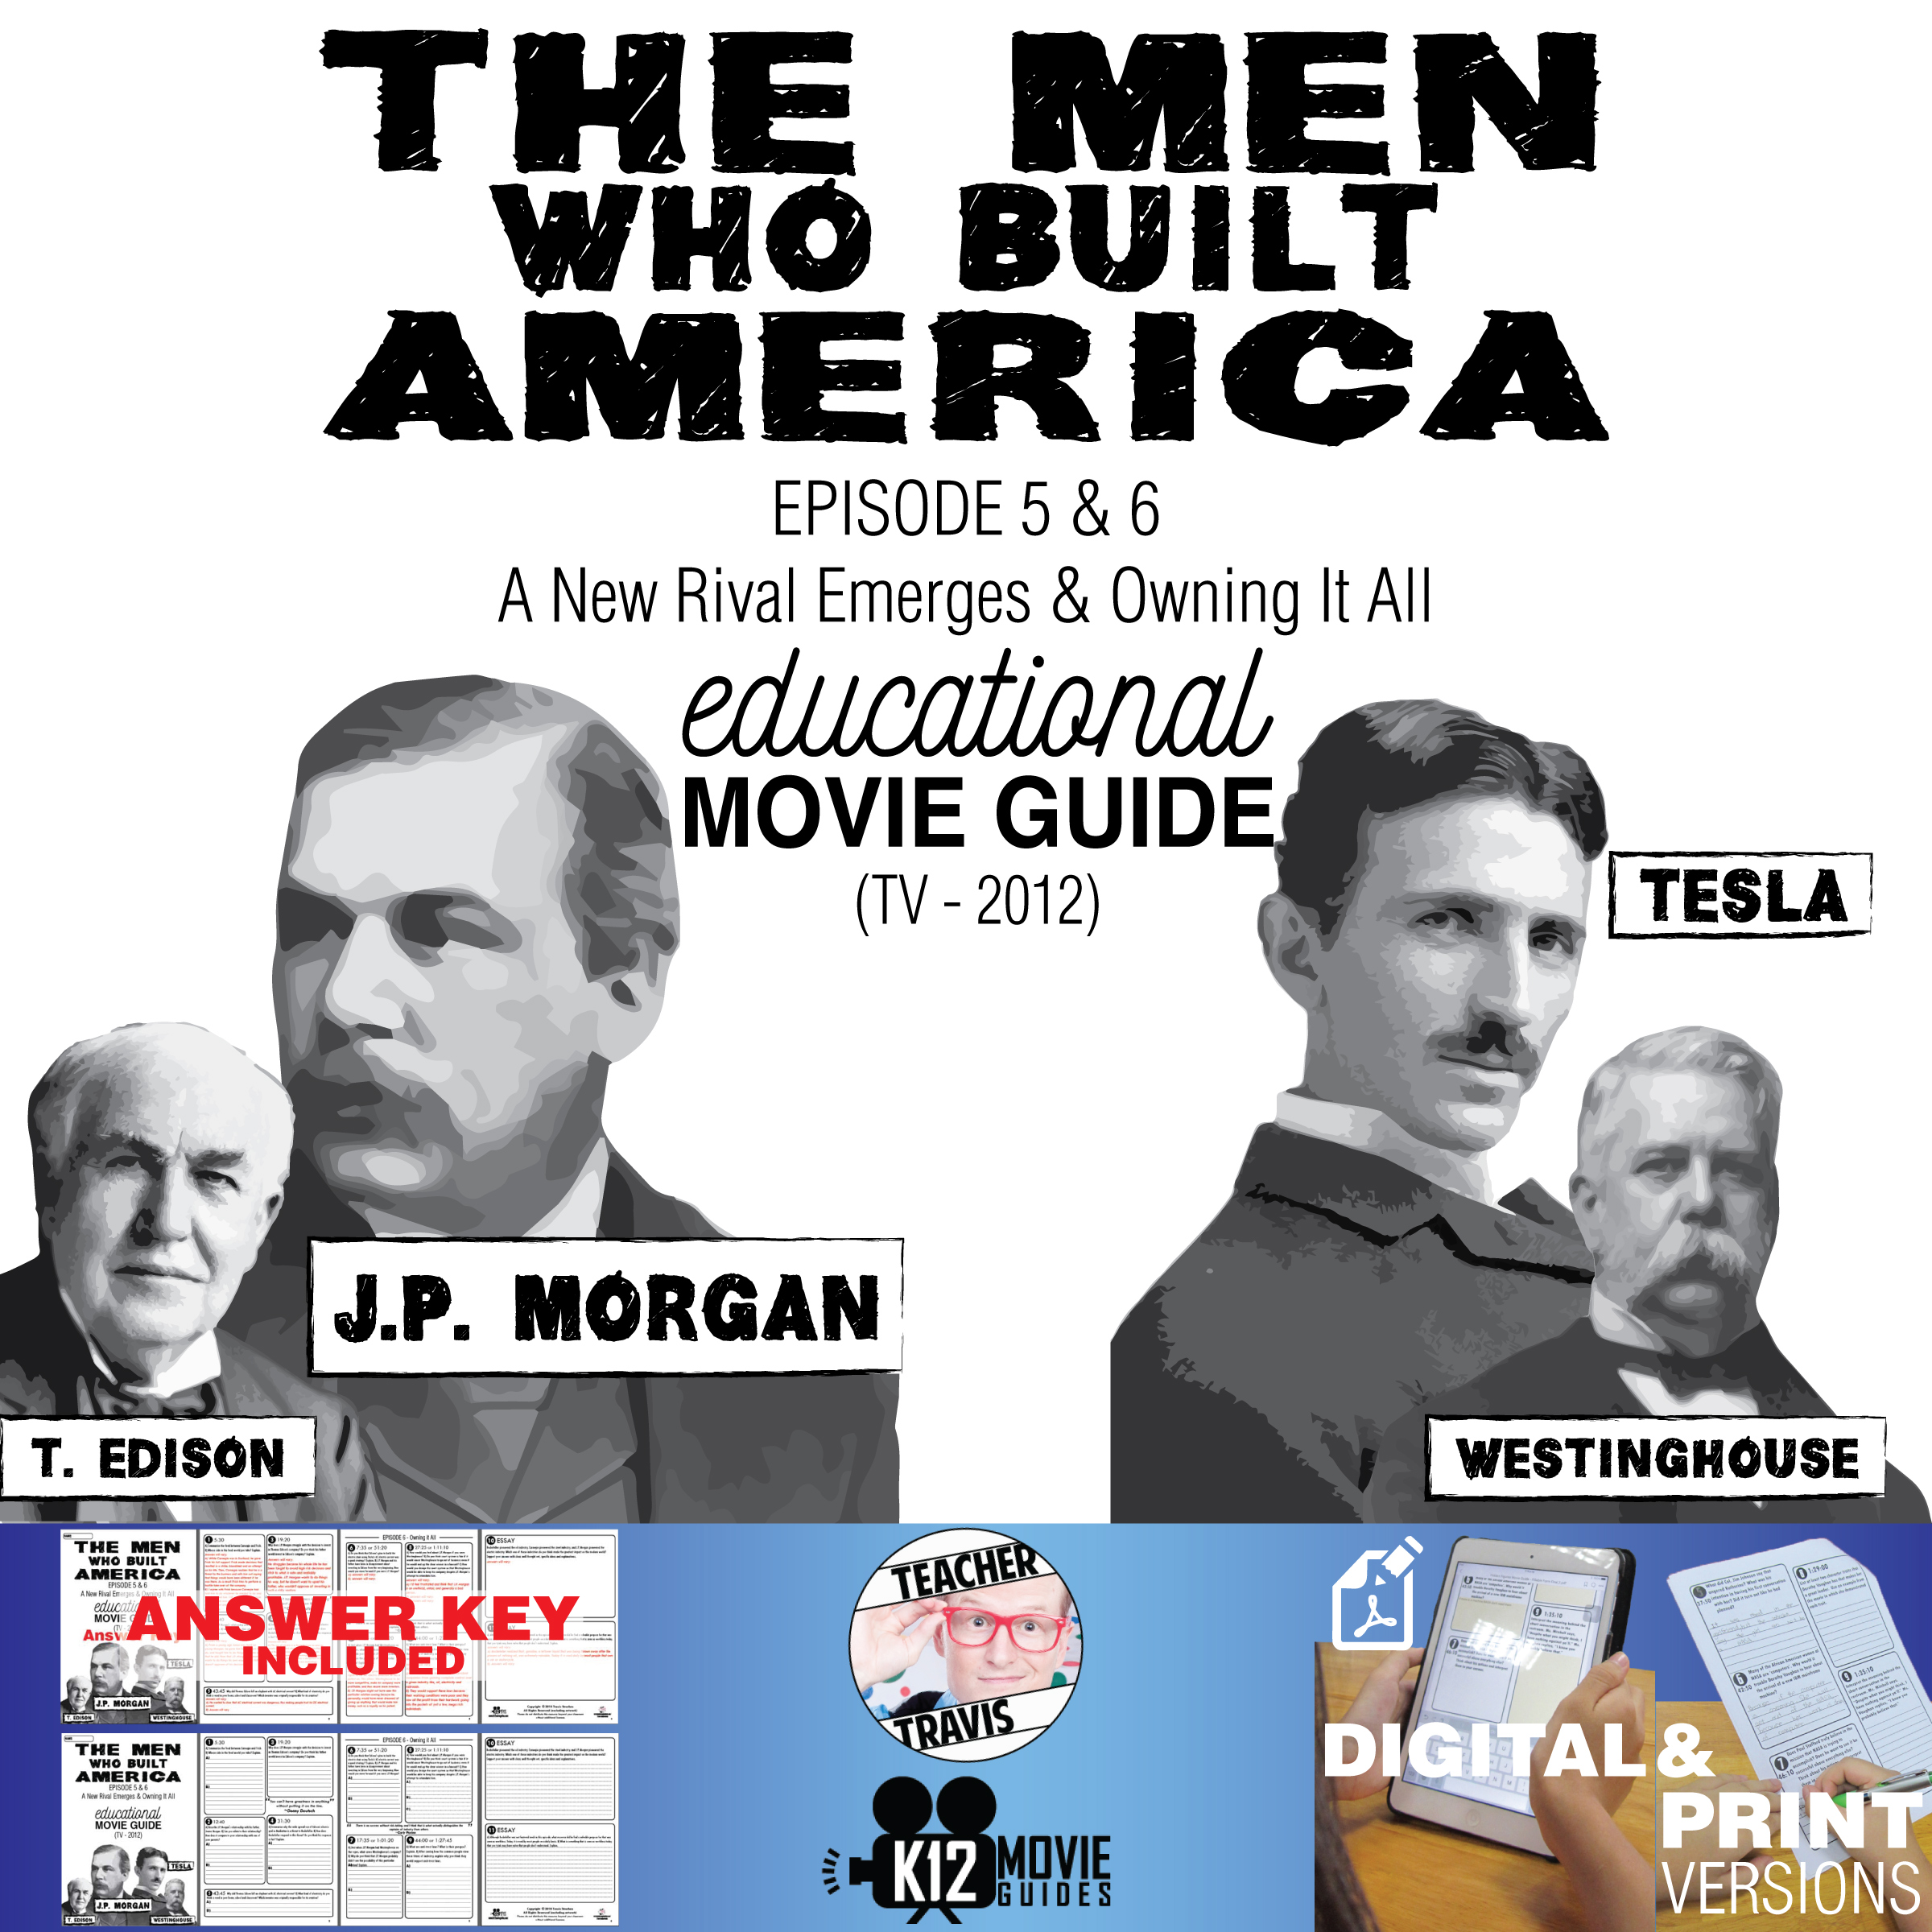 The Men Who Built America - Ep 5 & 6 Movie Guide | Worksheet (TV - 2012) Cover